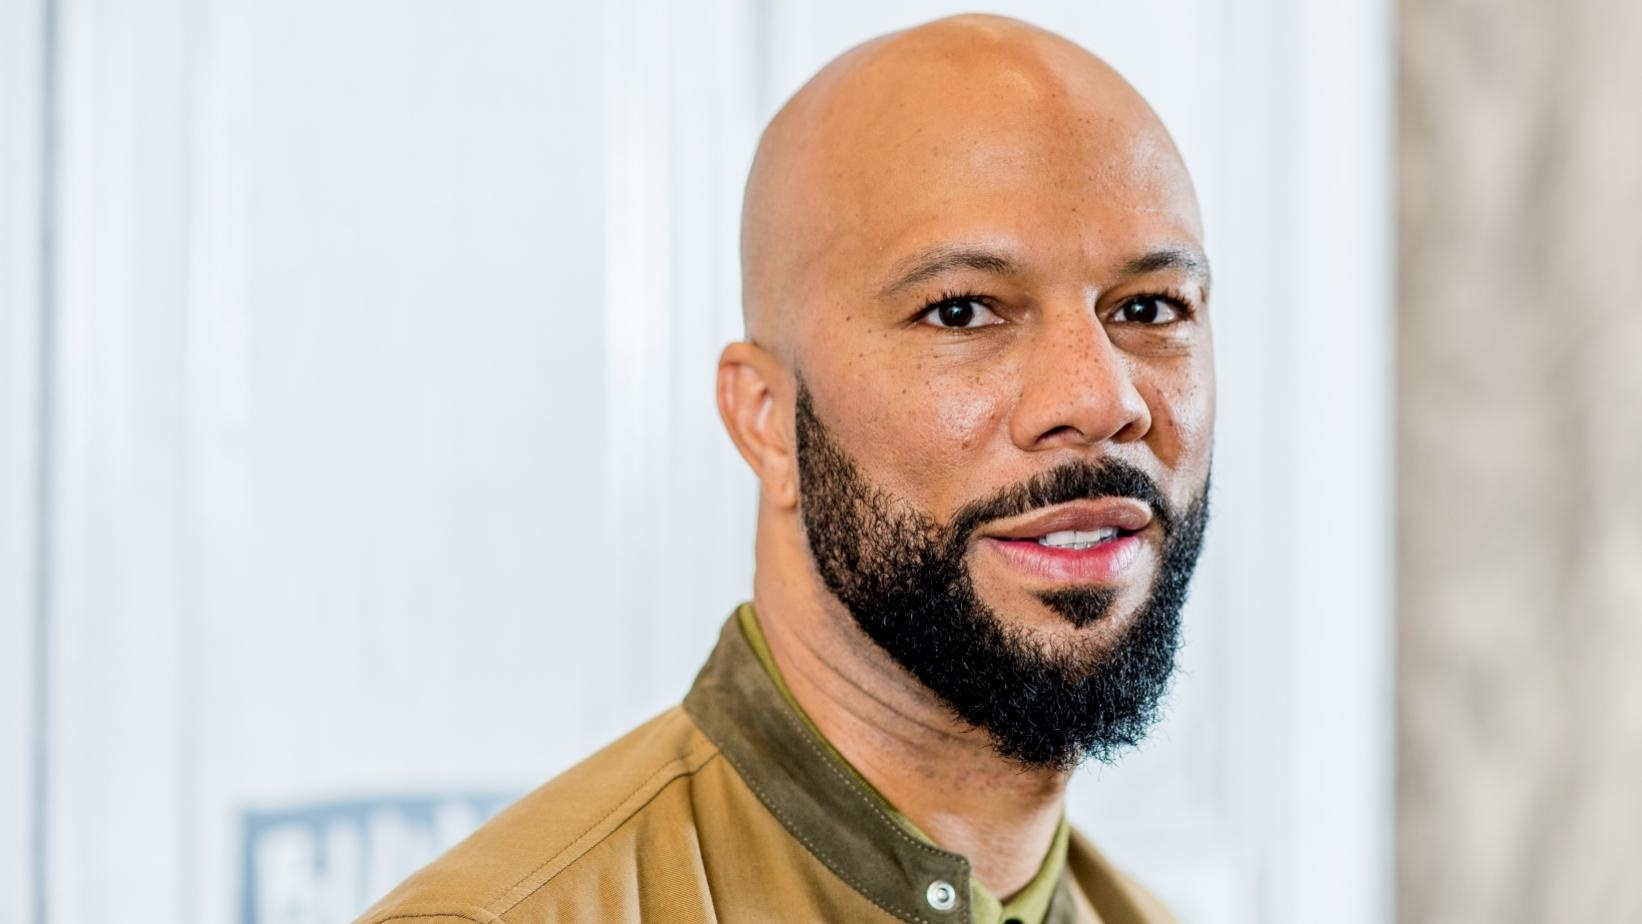 More Than A Rapper, Common Reminds Us Why A Father's Love Is So Important